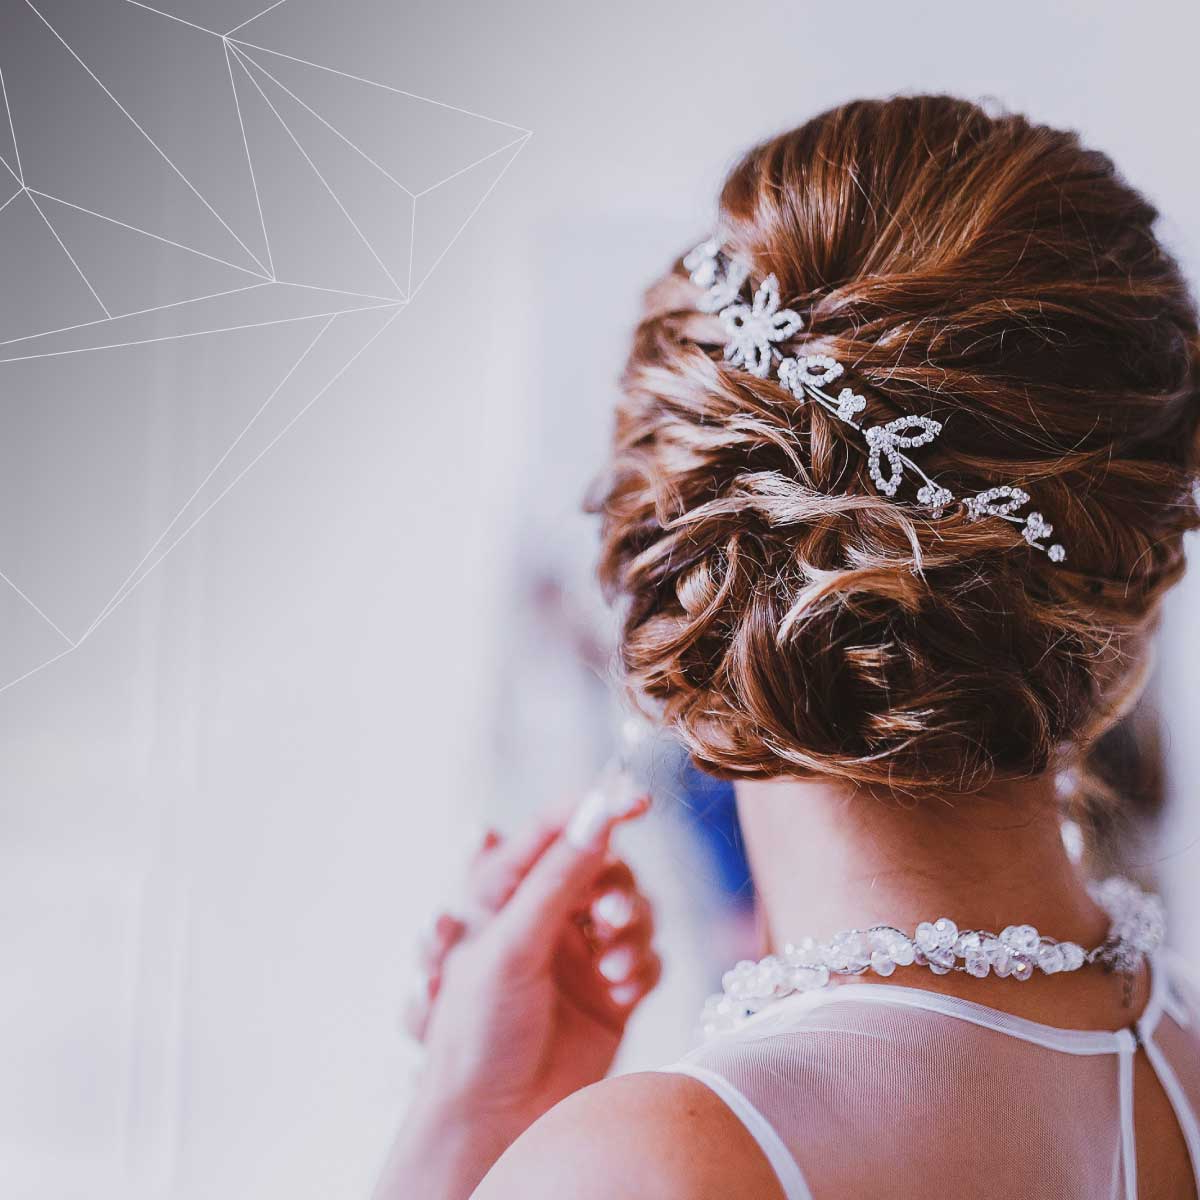 2017 Teased Wedding Hairstyles With Embellishment Inside It's Wedding Season! Check Out These Trending Wedding Hairstyles (View 2 of 20)